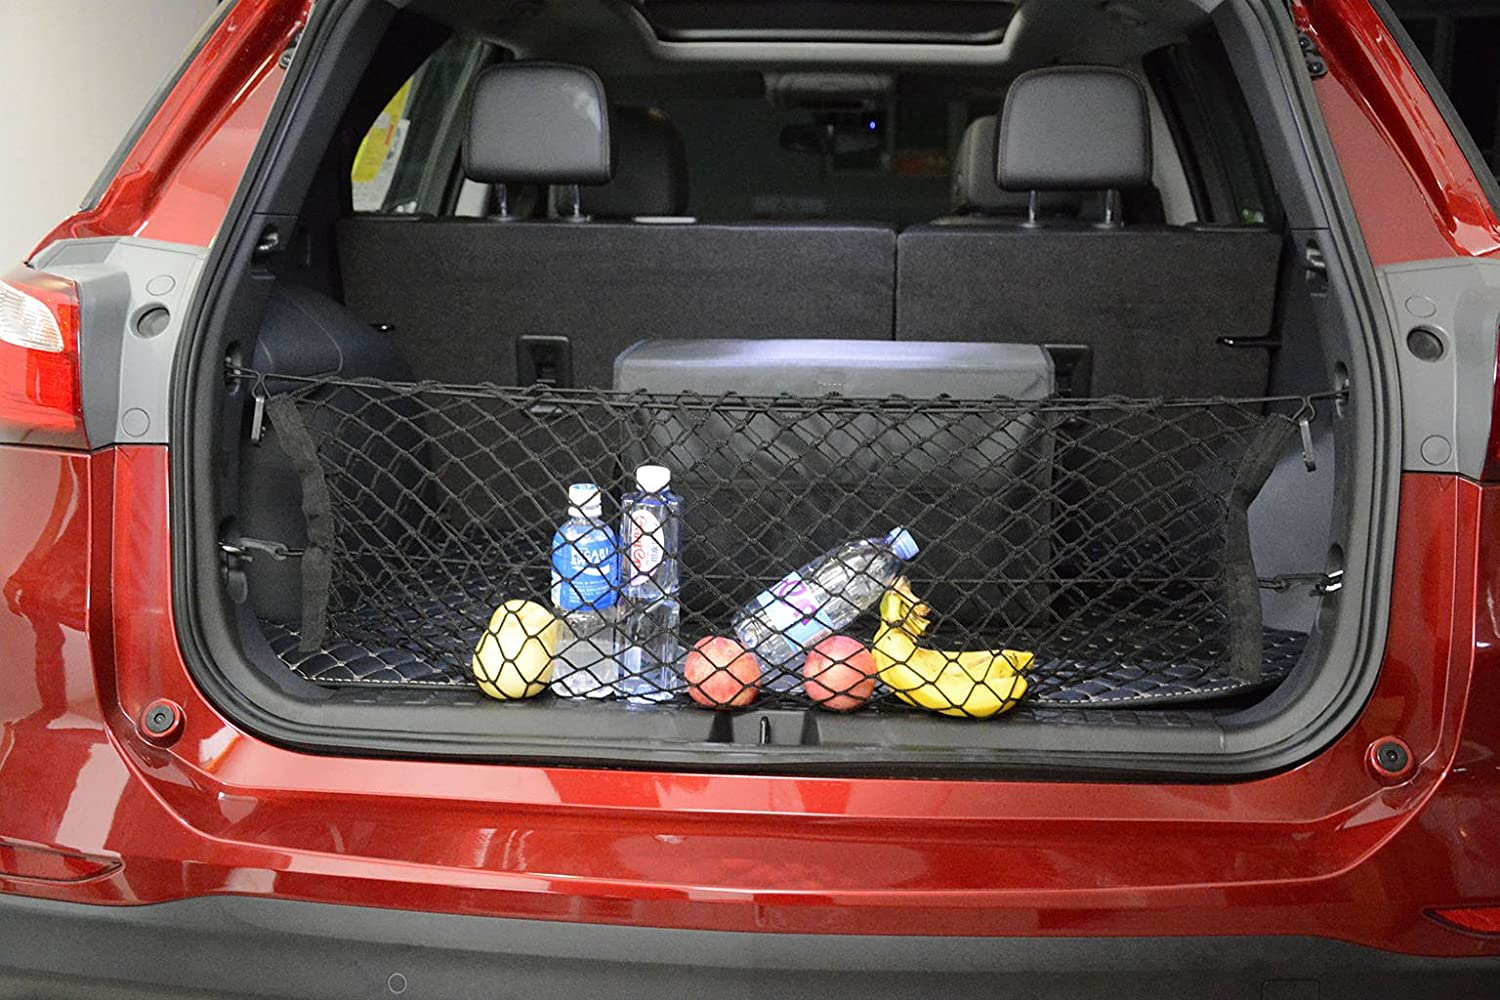 Kaungka Cargo Net Nylon Rear Trunk for 2013-2017 Hyundai Santa Fe Sport Santa Fe Tucson Guangzhou Kai-long Auto Accessories Ltd.